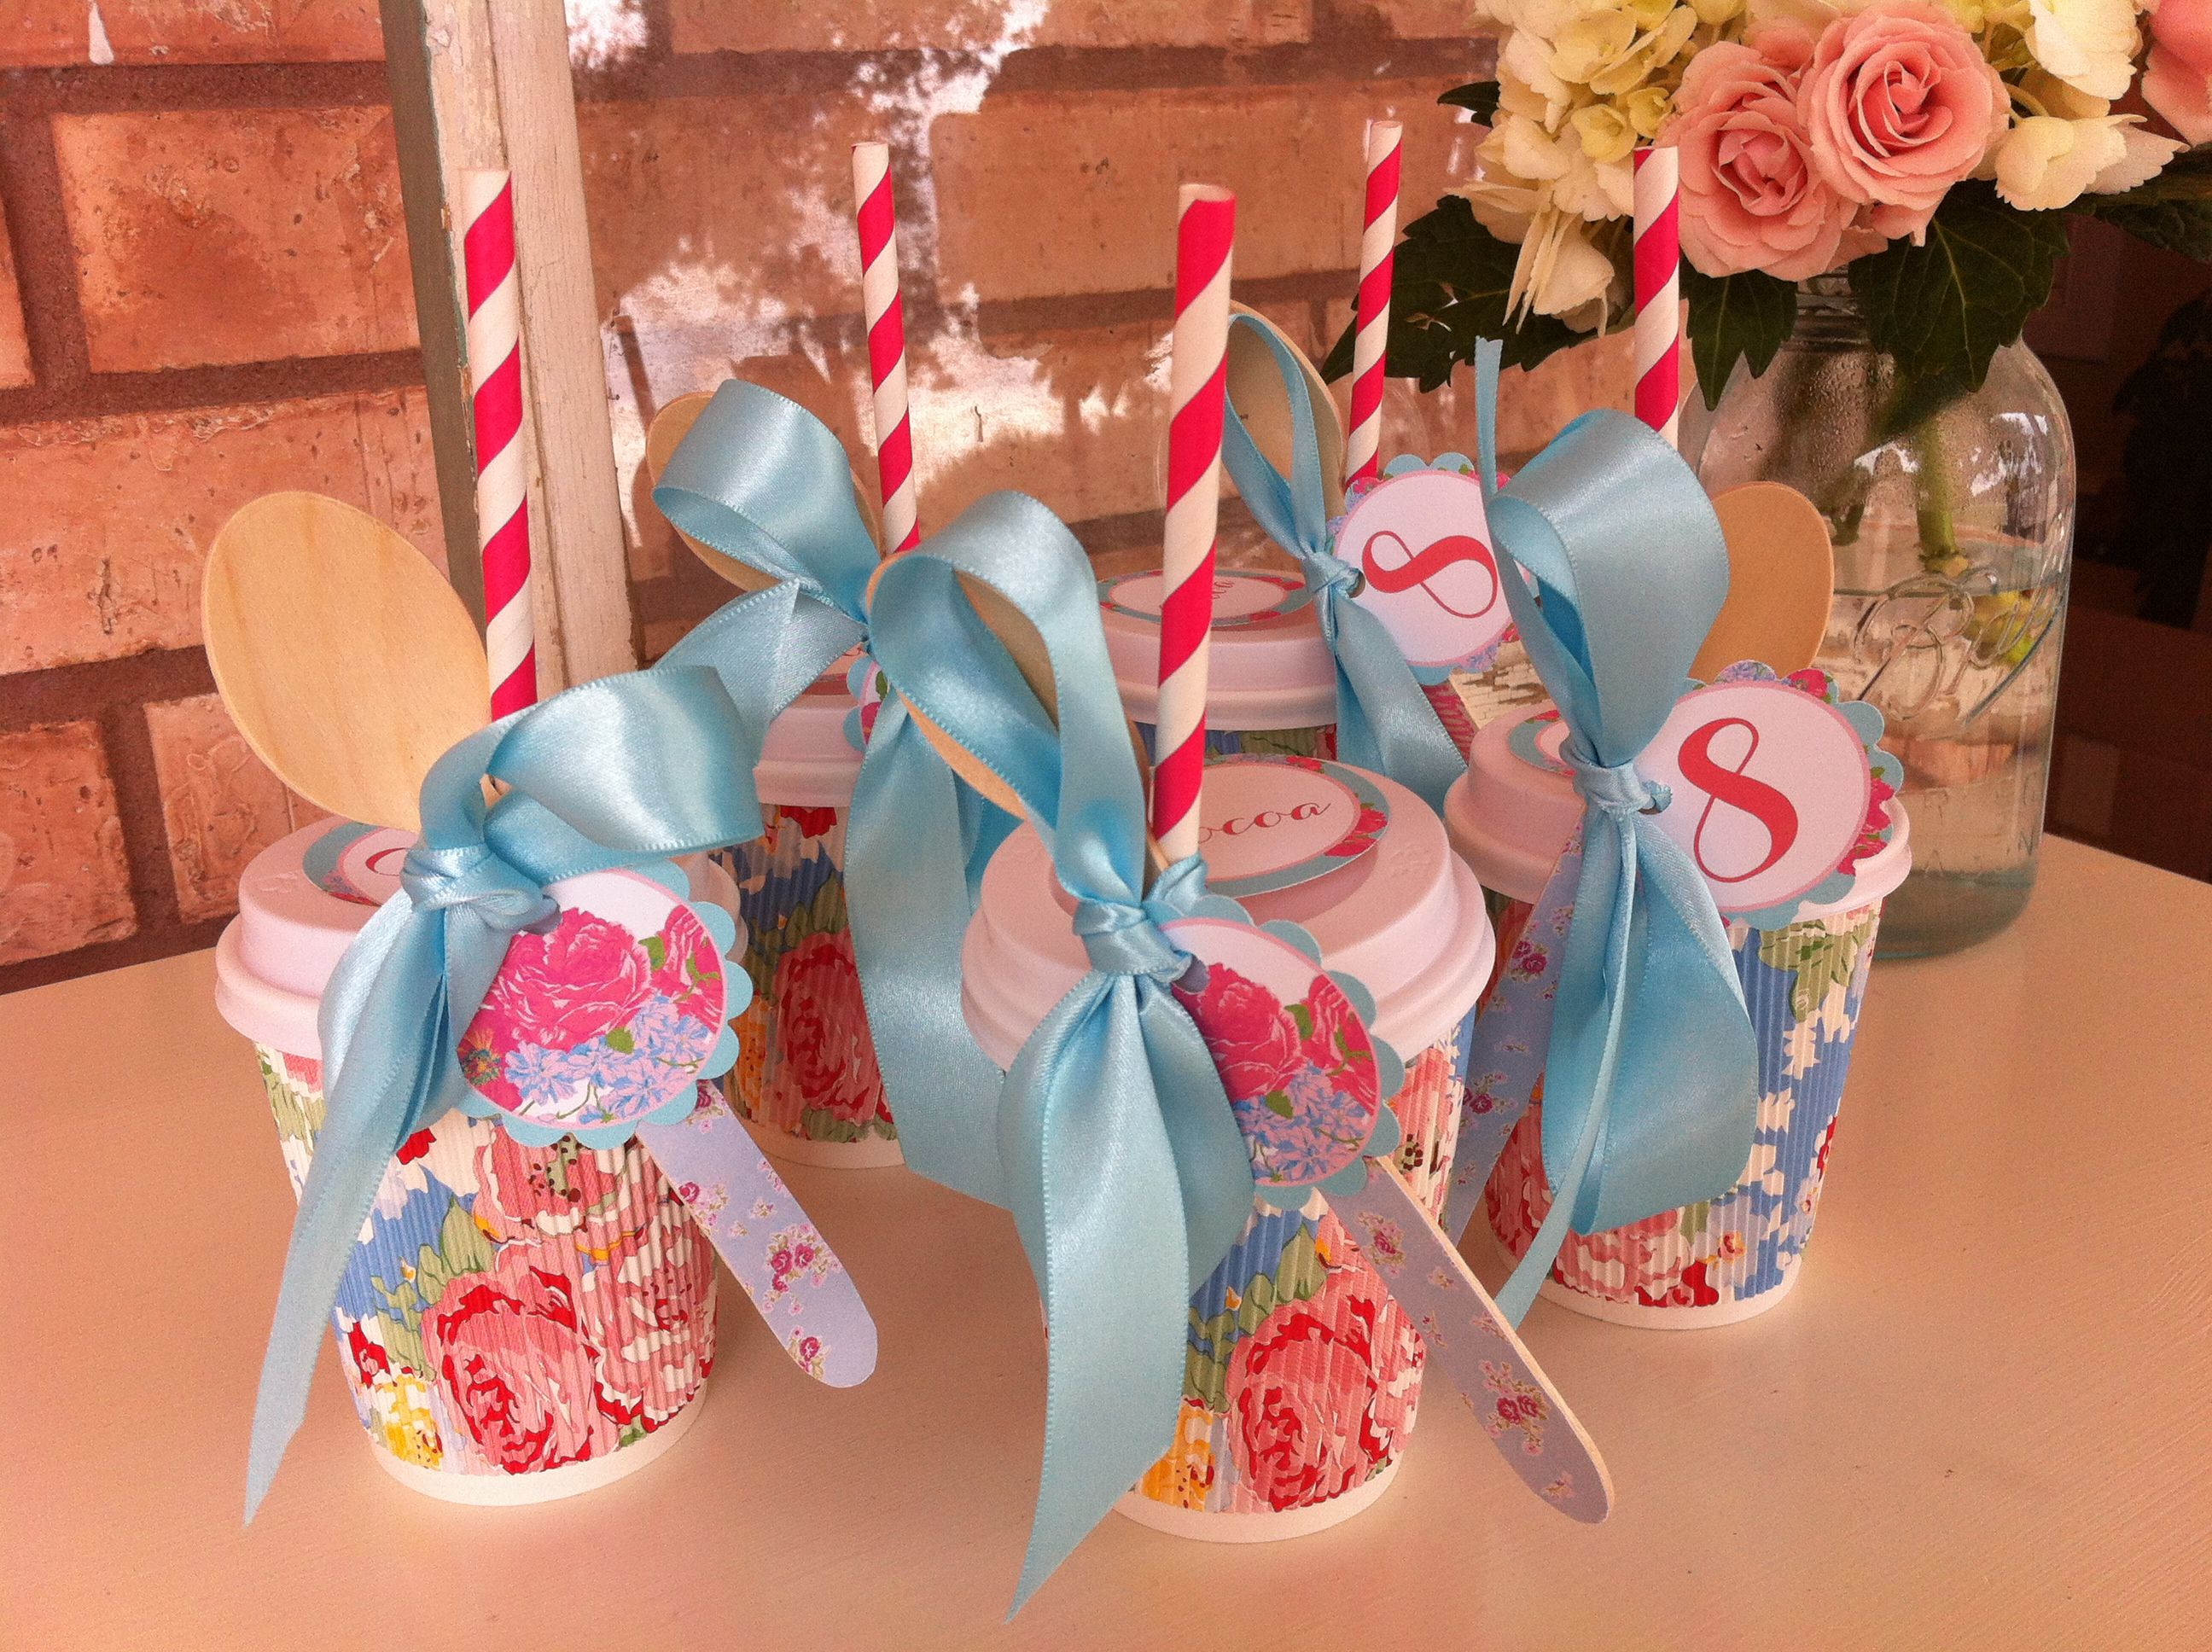 Cocktail Party Favor Ideas Part - 34: Hot Cocoa Party Favors Shabby Chic Tea Party By Oh Goodie Designs